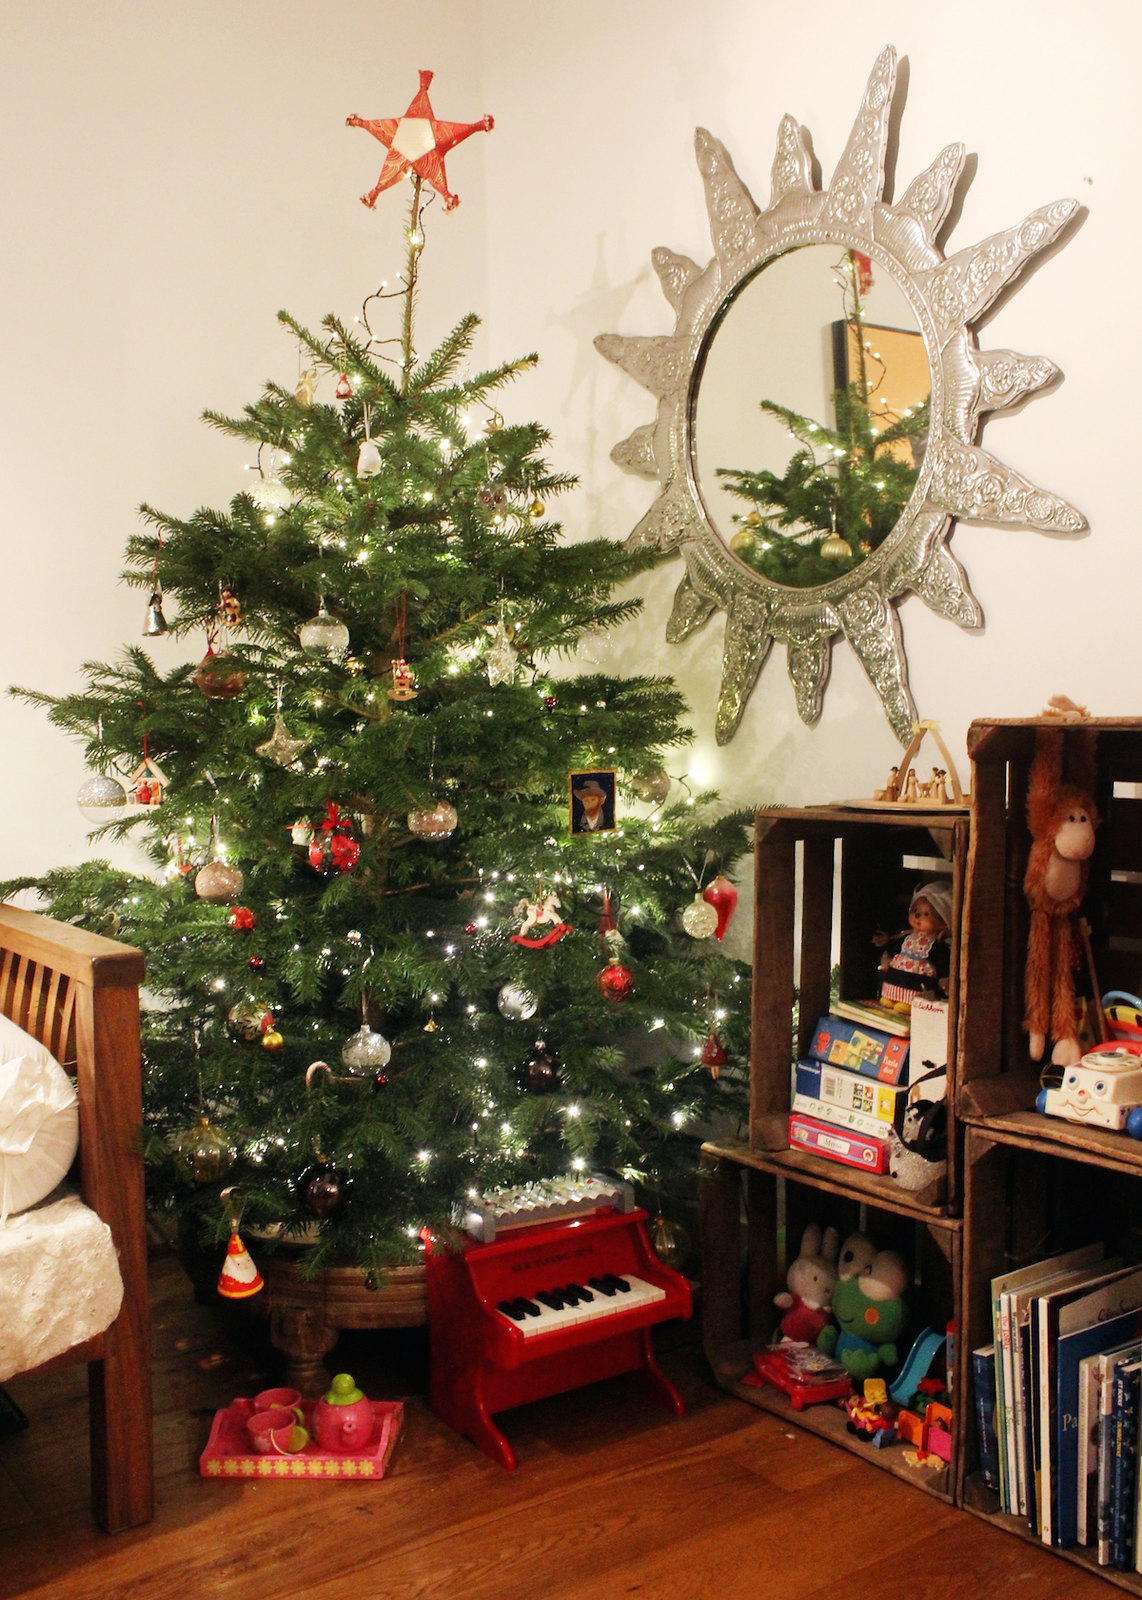 Our first Christmas tree in Amsterdam